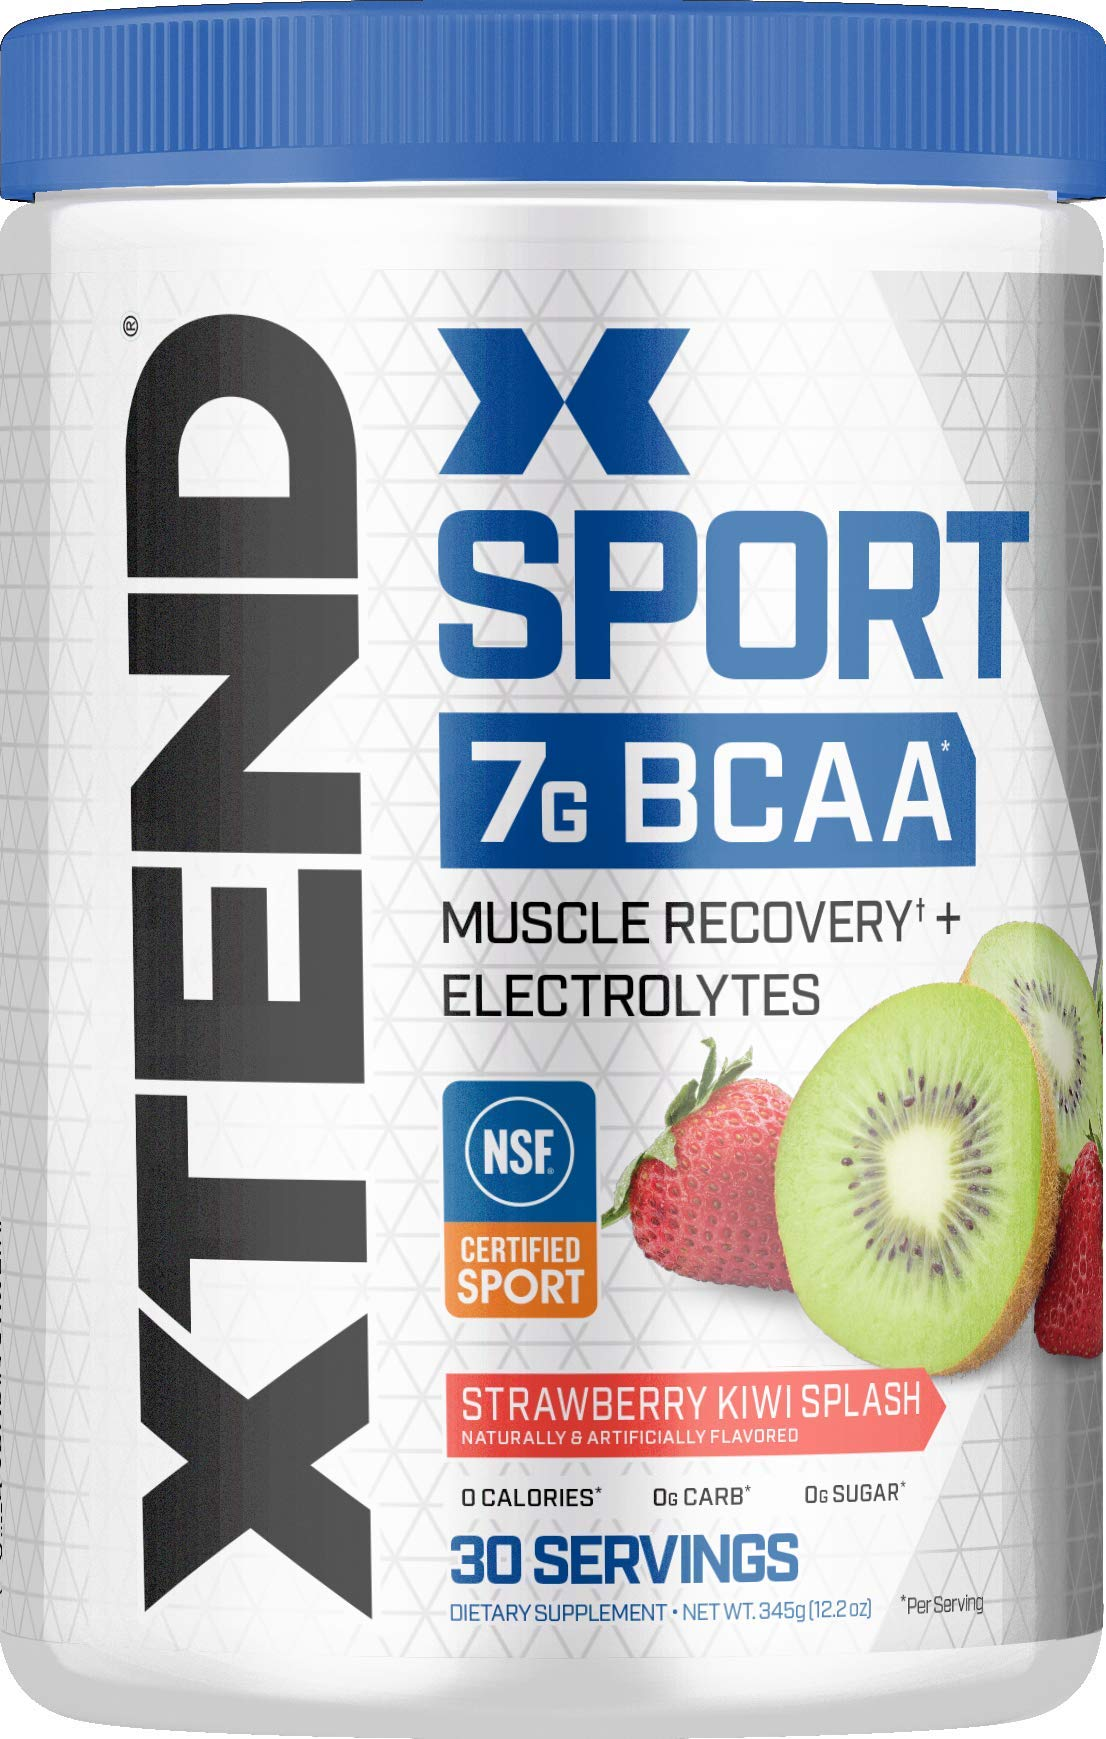 XTEND Sport BCAA Powder Strawberry Kiwi Splash | Electrolyte Powder for Recovery & Hydration with Amino Acids | 30 Servings | Packaging May Vary